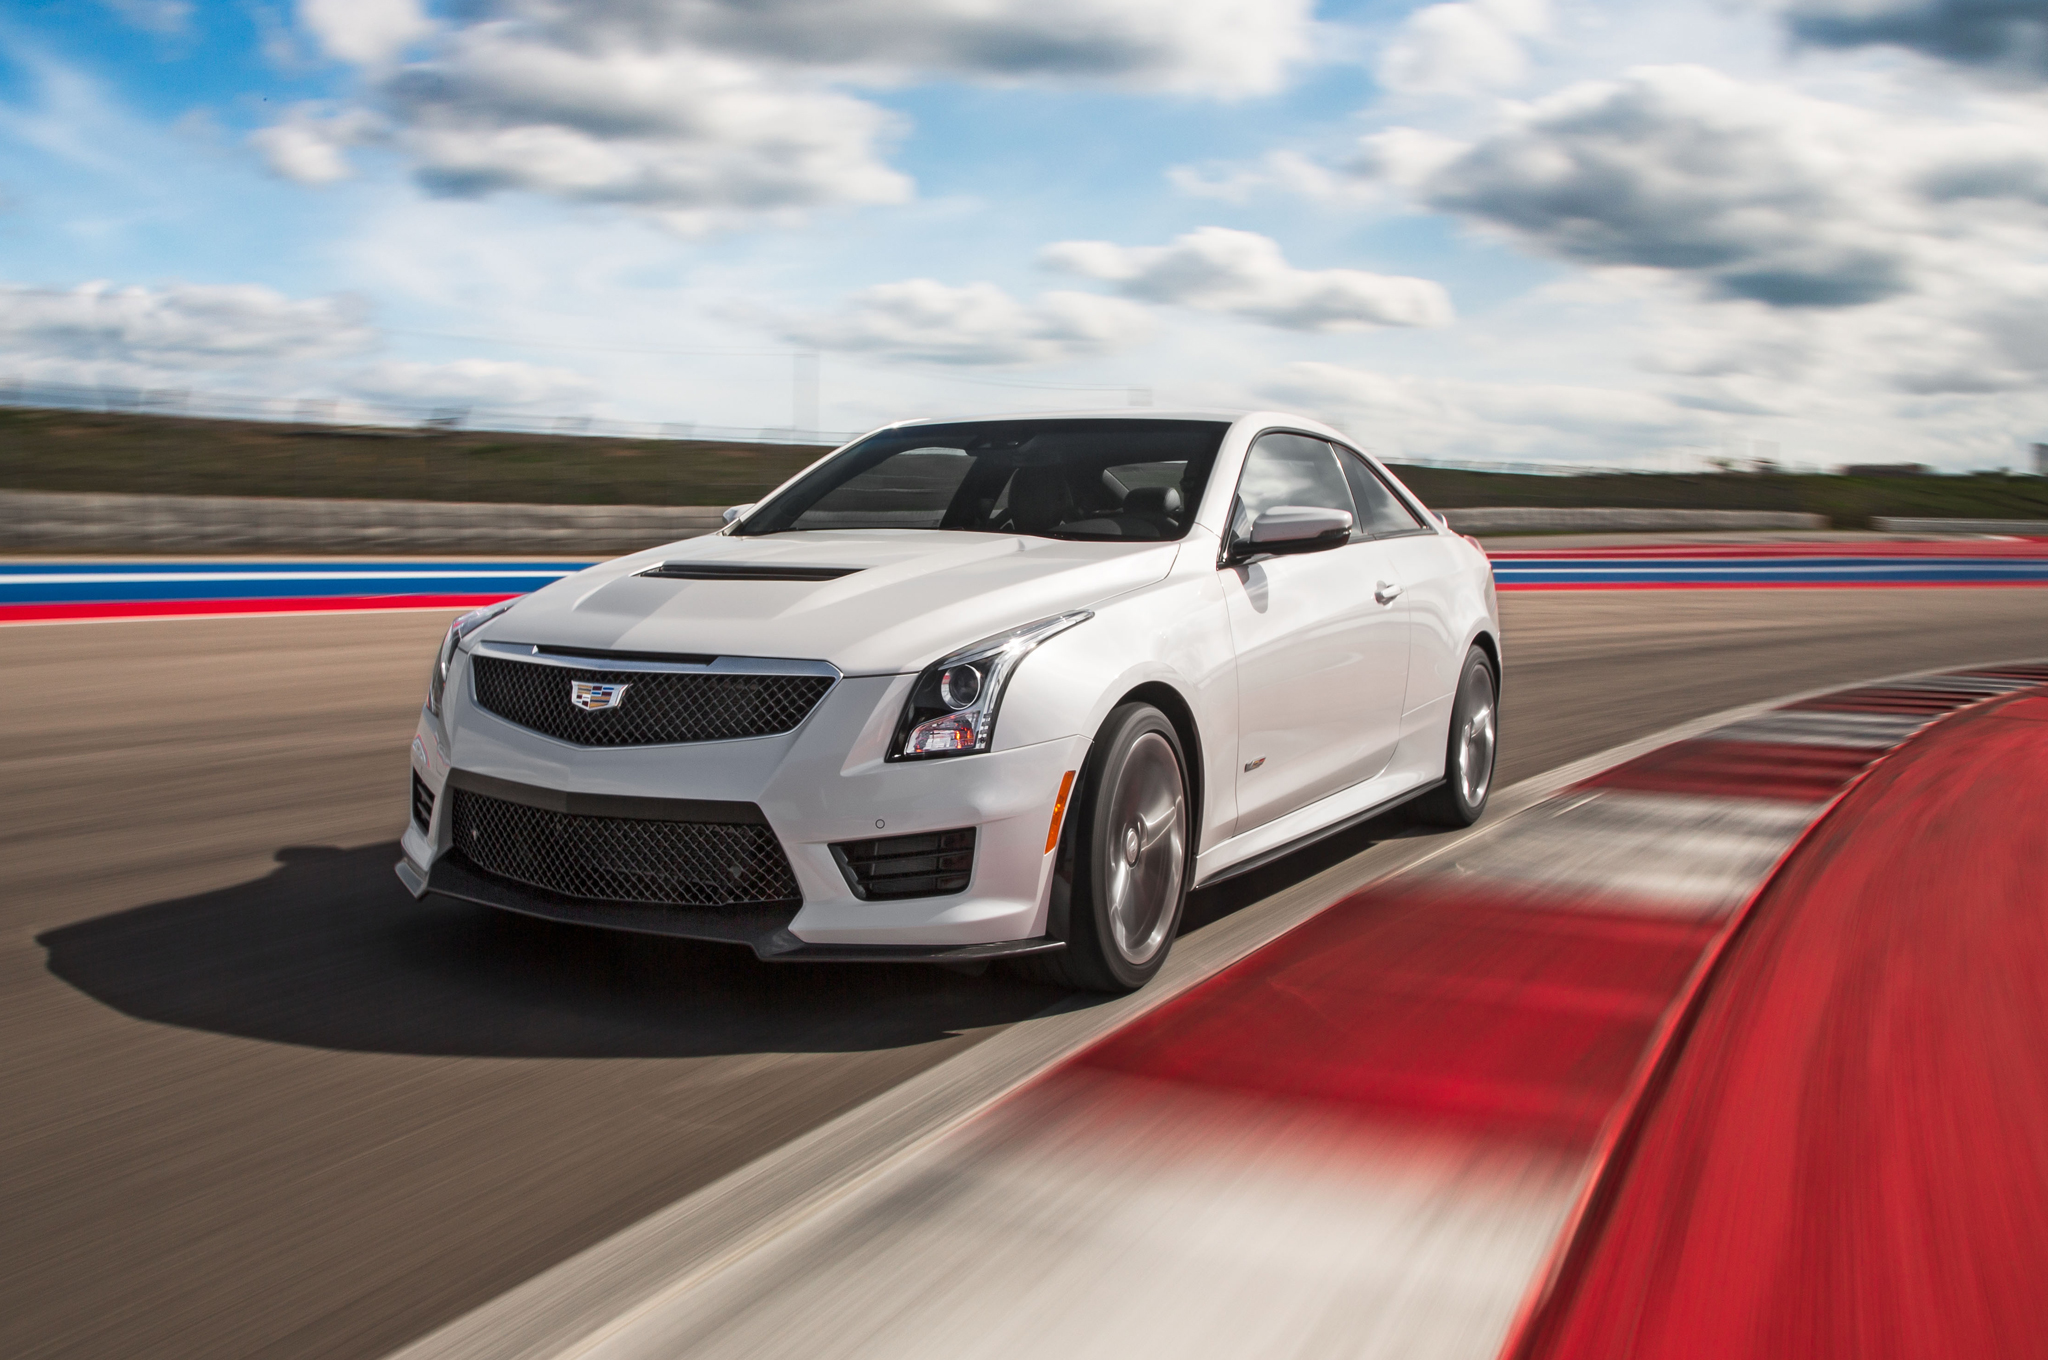 cadillac manufacturer autoguide v the news ats learned things com about i